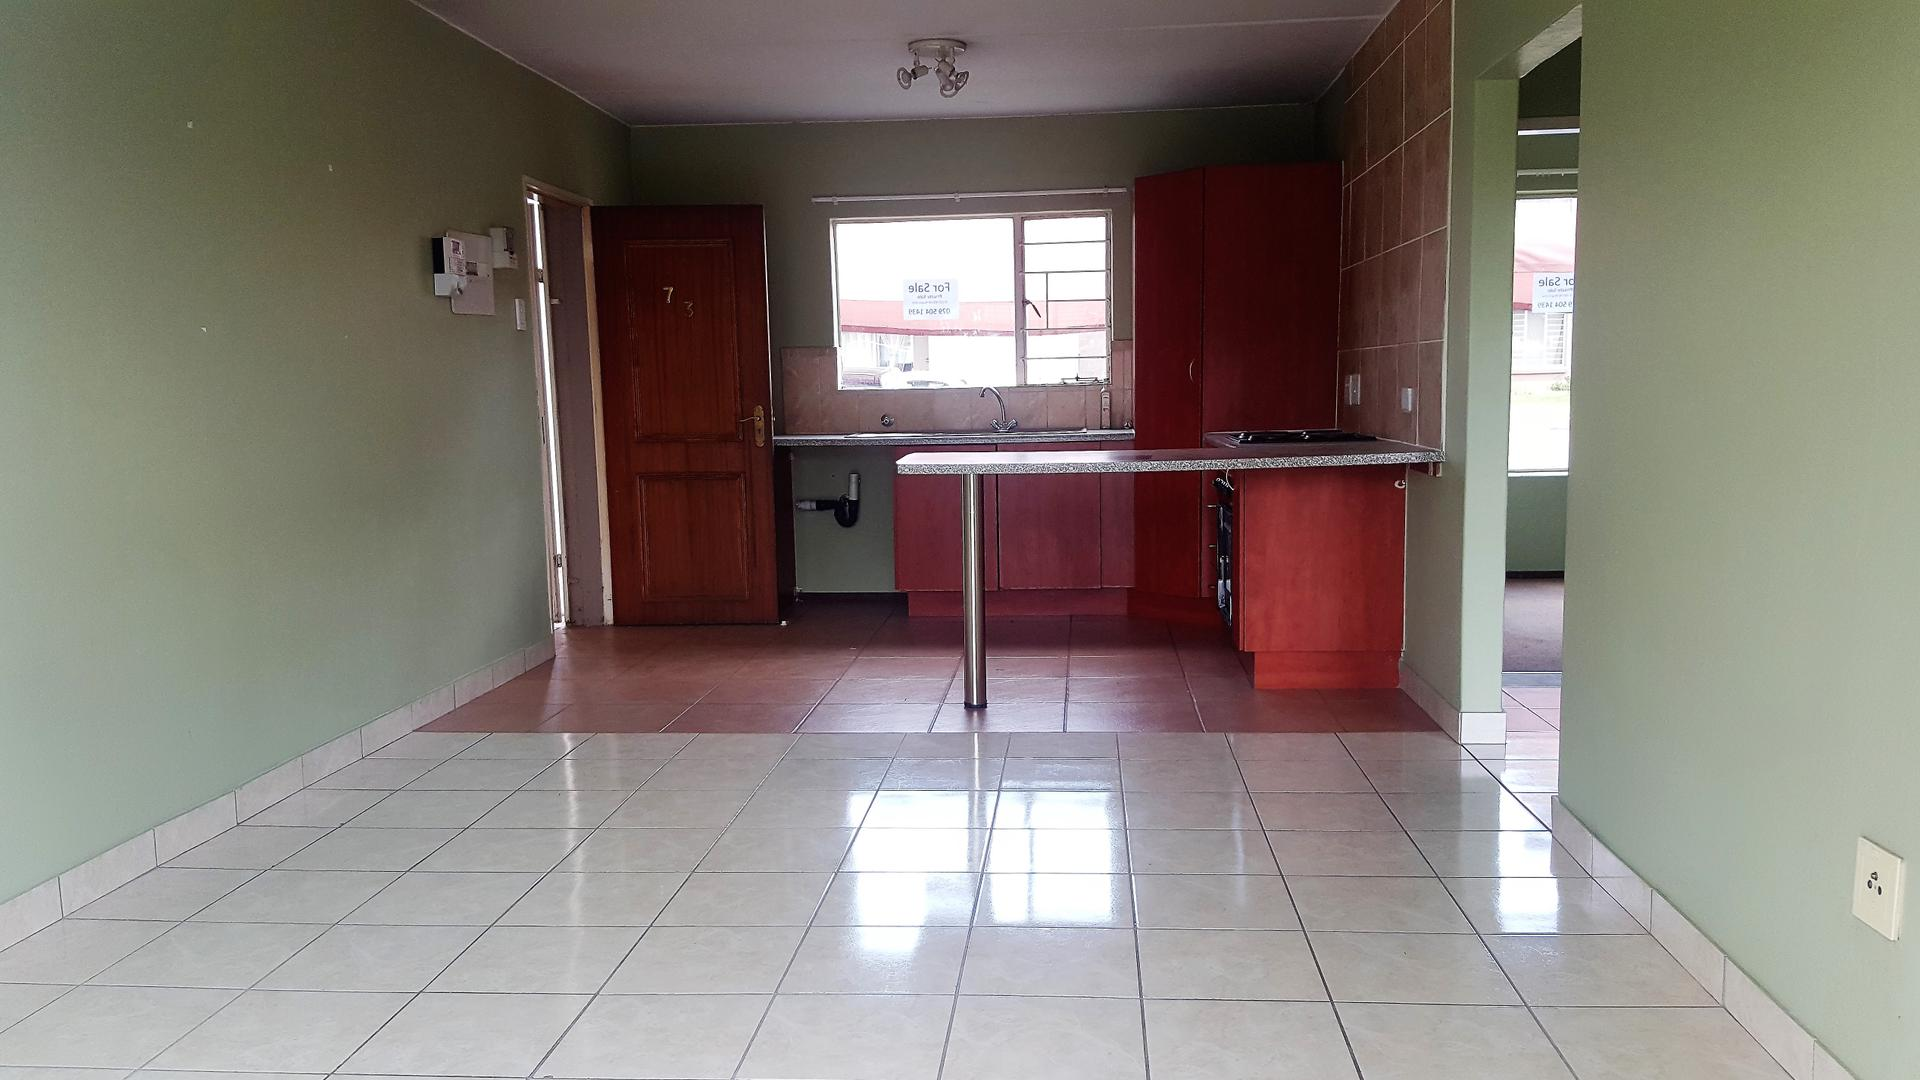 2 BedroomApartment For Sale In Kleinfontein